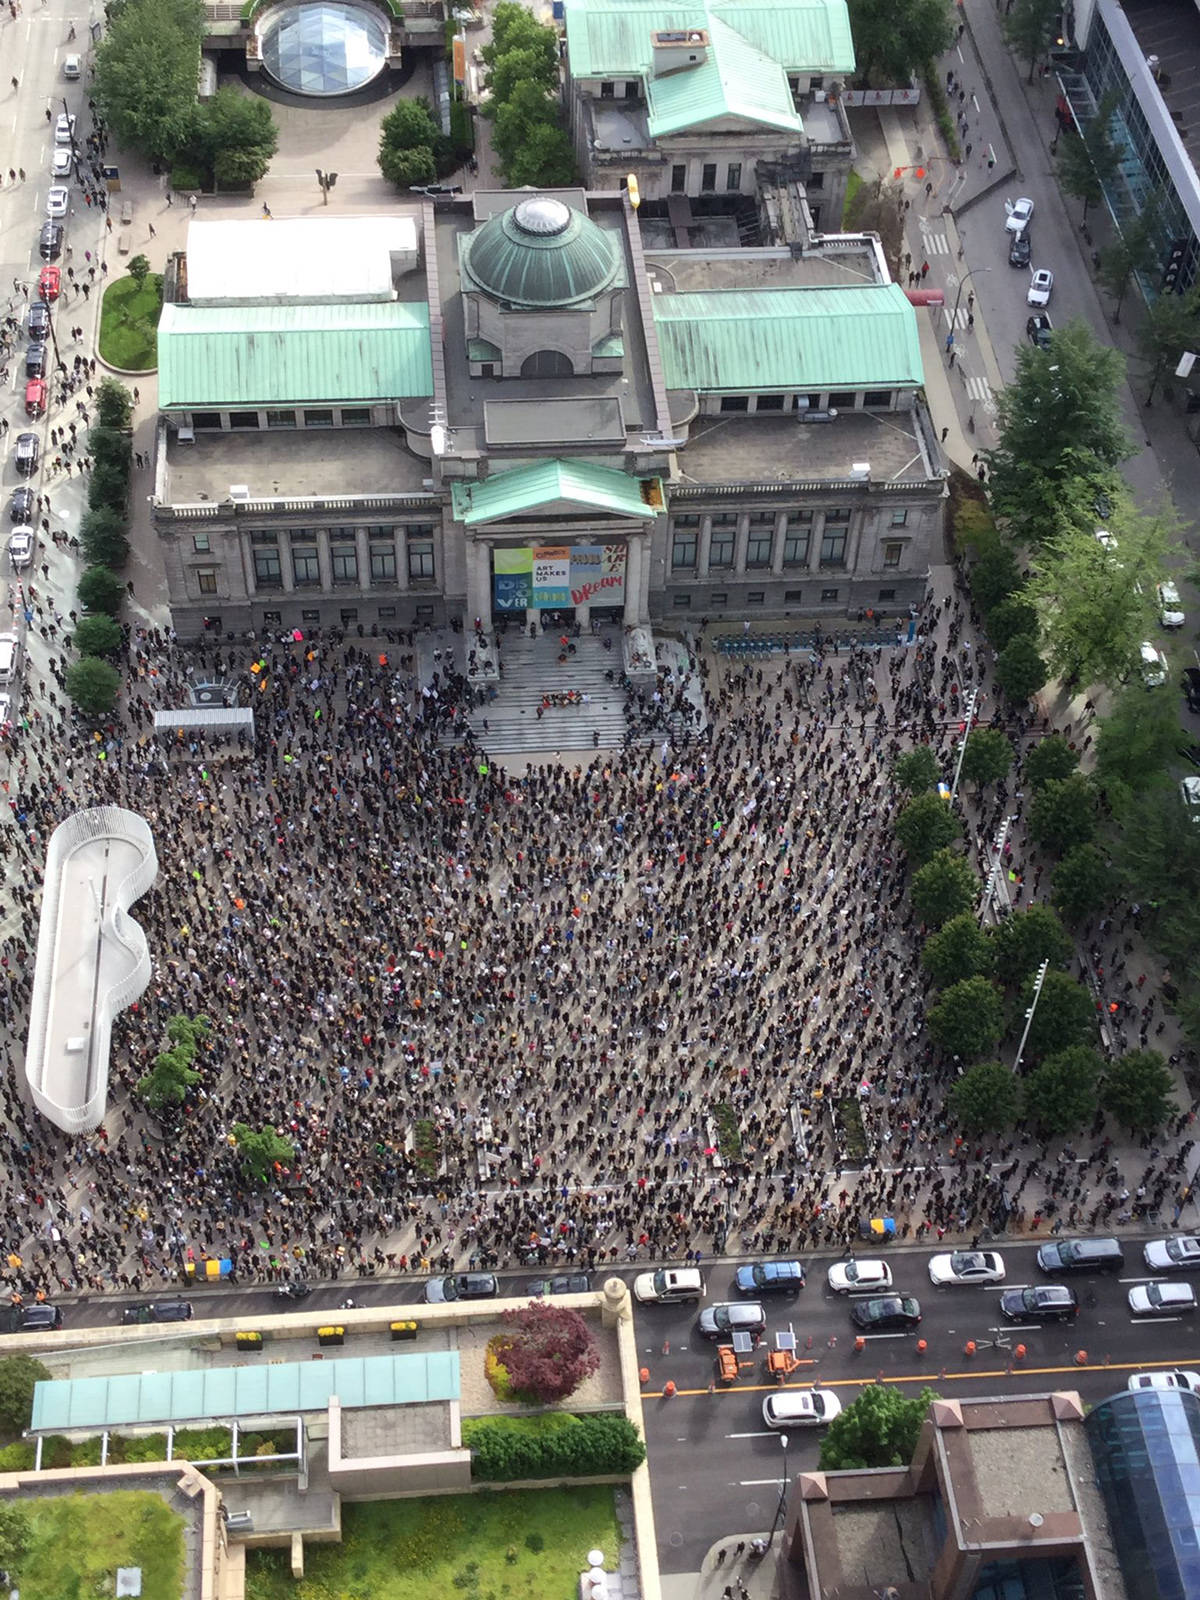 A large crowd gathered outside the Vancouver Art Gallery to protest racism and police violence on Sunday, May 31, 2020. (Marguerite Ethier/Twitter)